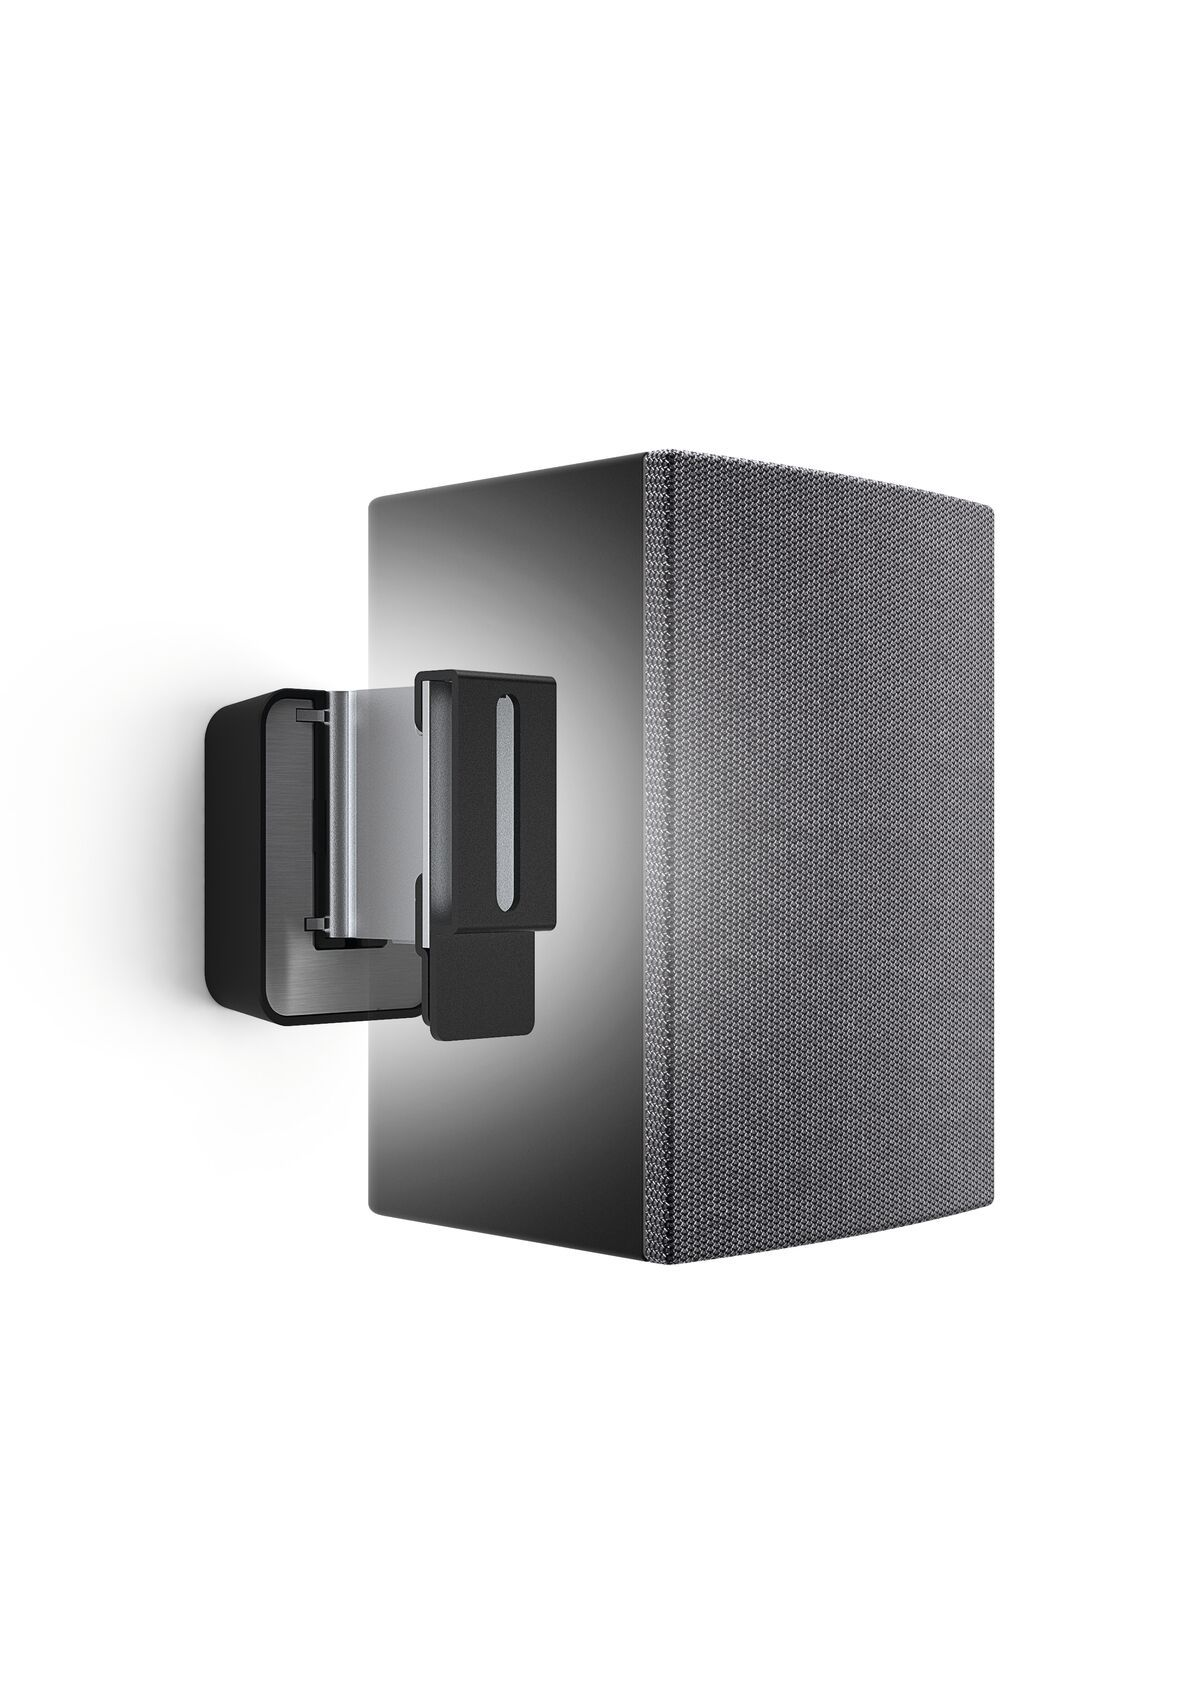 Vogel's SOUND 3200 Speaker Wall Mount (black) - Ideally suited for: Universal - Max. weight load: 5 kg - Application